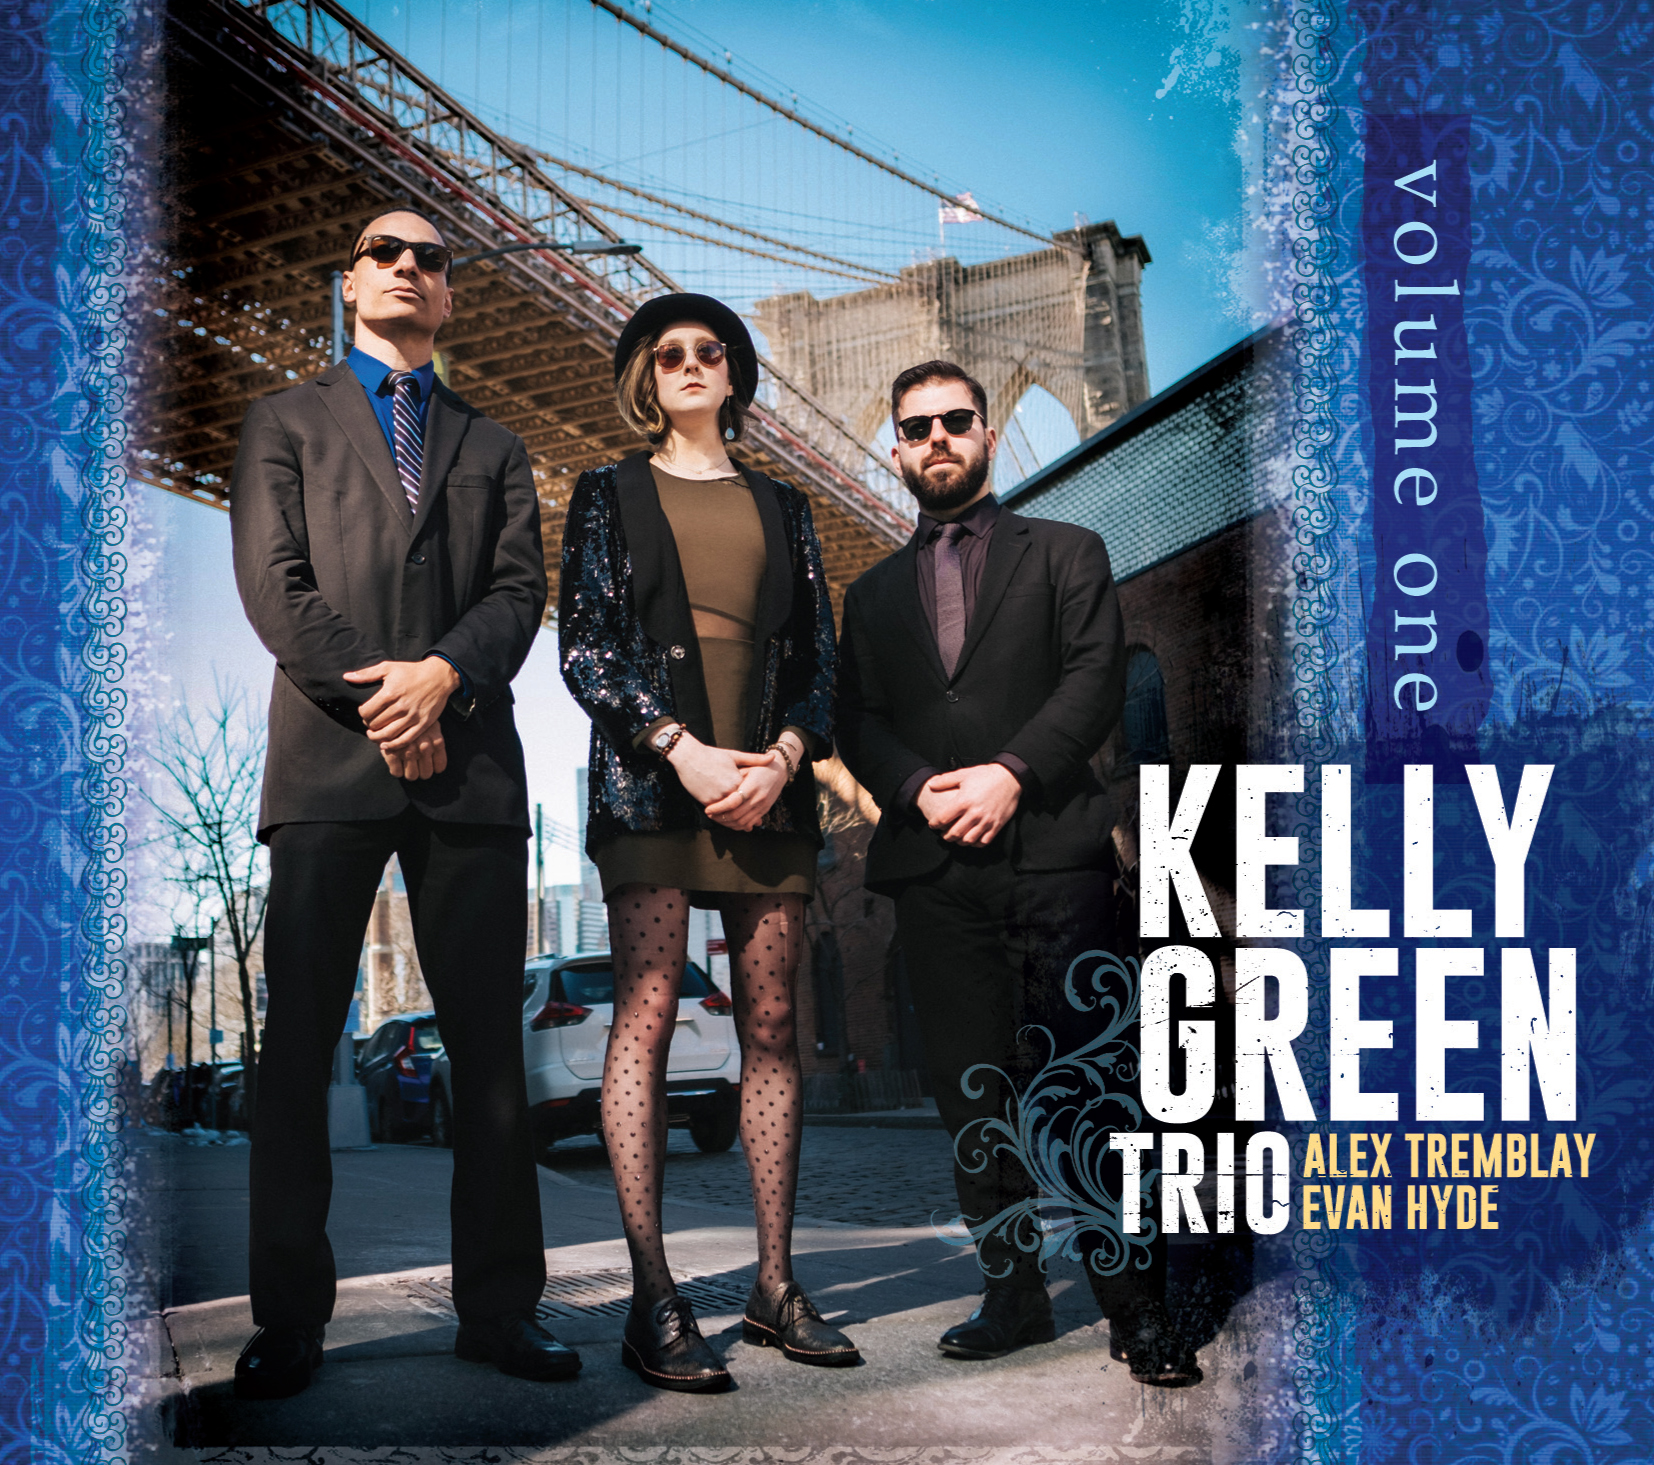 LISTING: New York City Jazz Record Includes Kelly Green in Vox News!